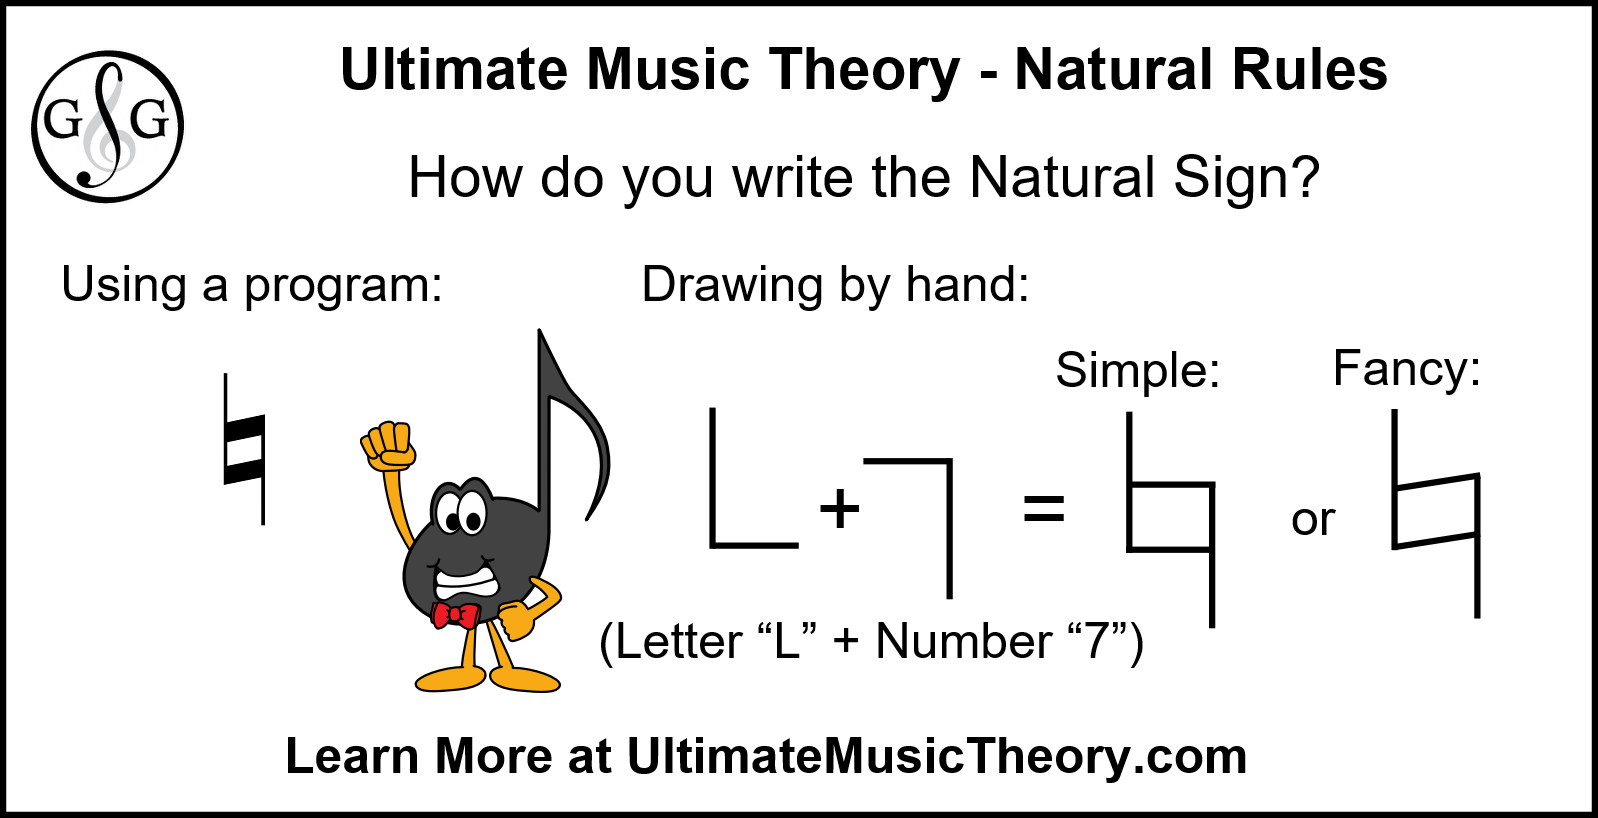 Ultimate Music Theory - Natural Rules - Writing by hand